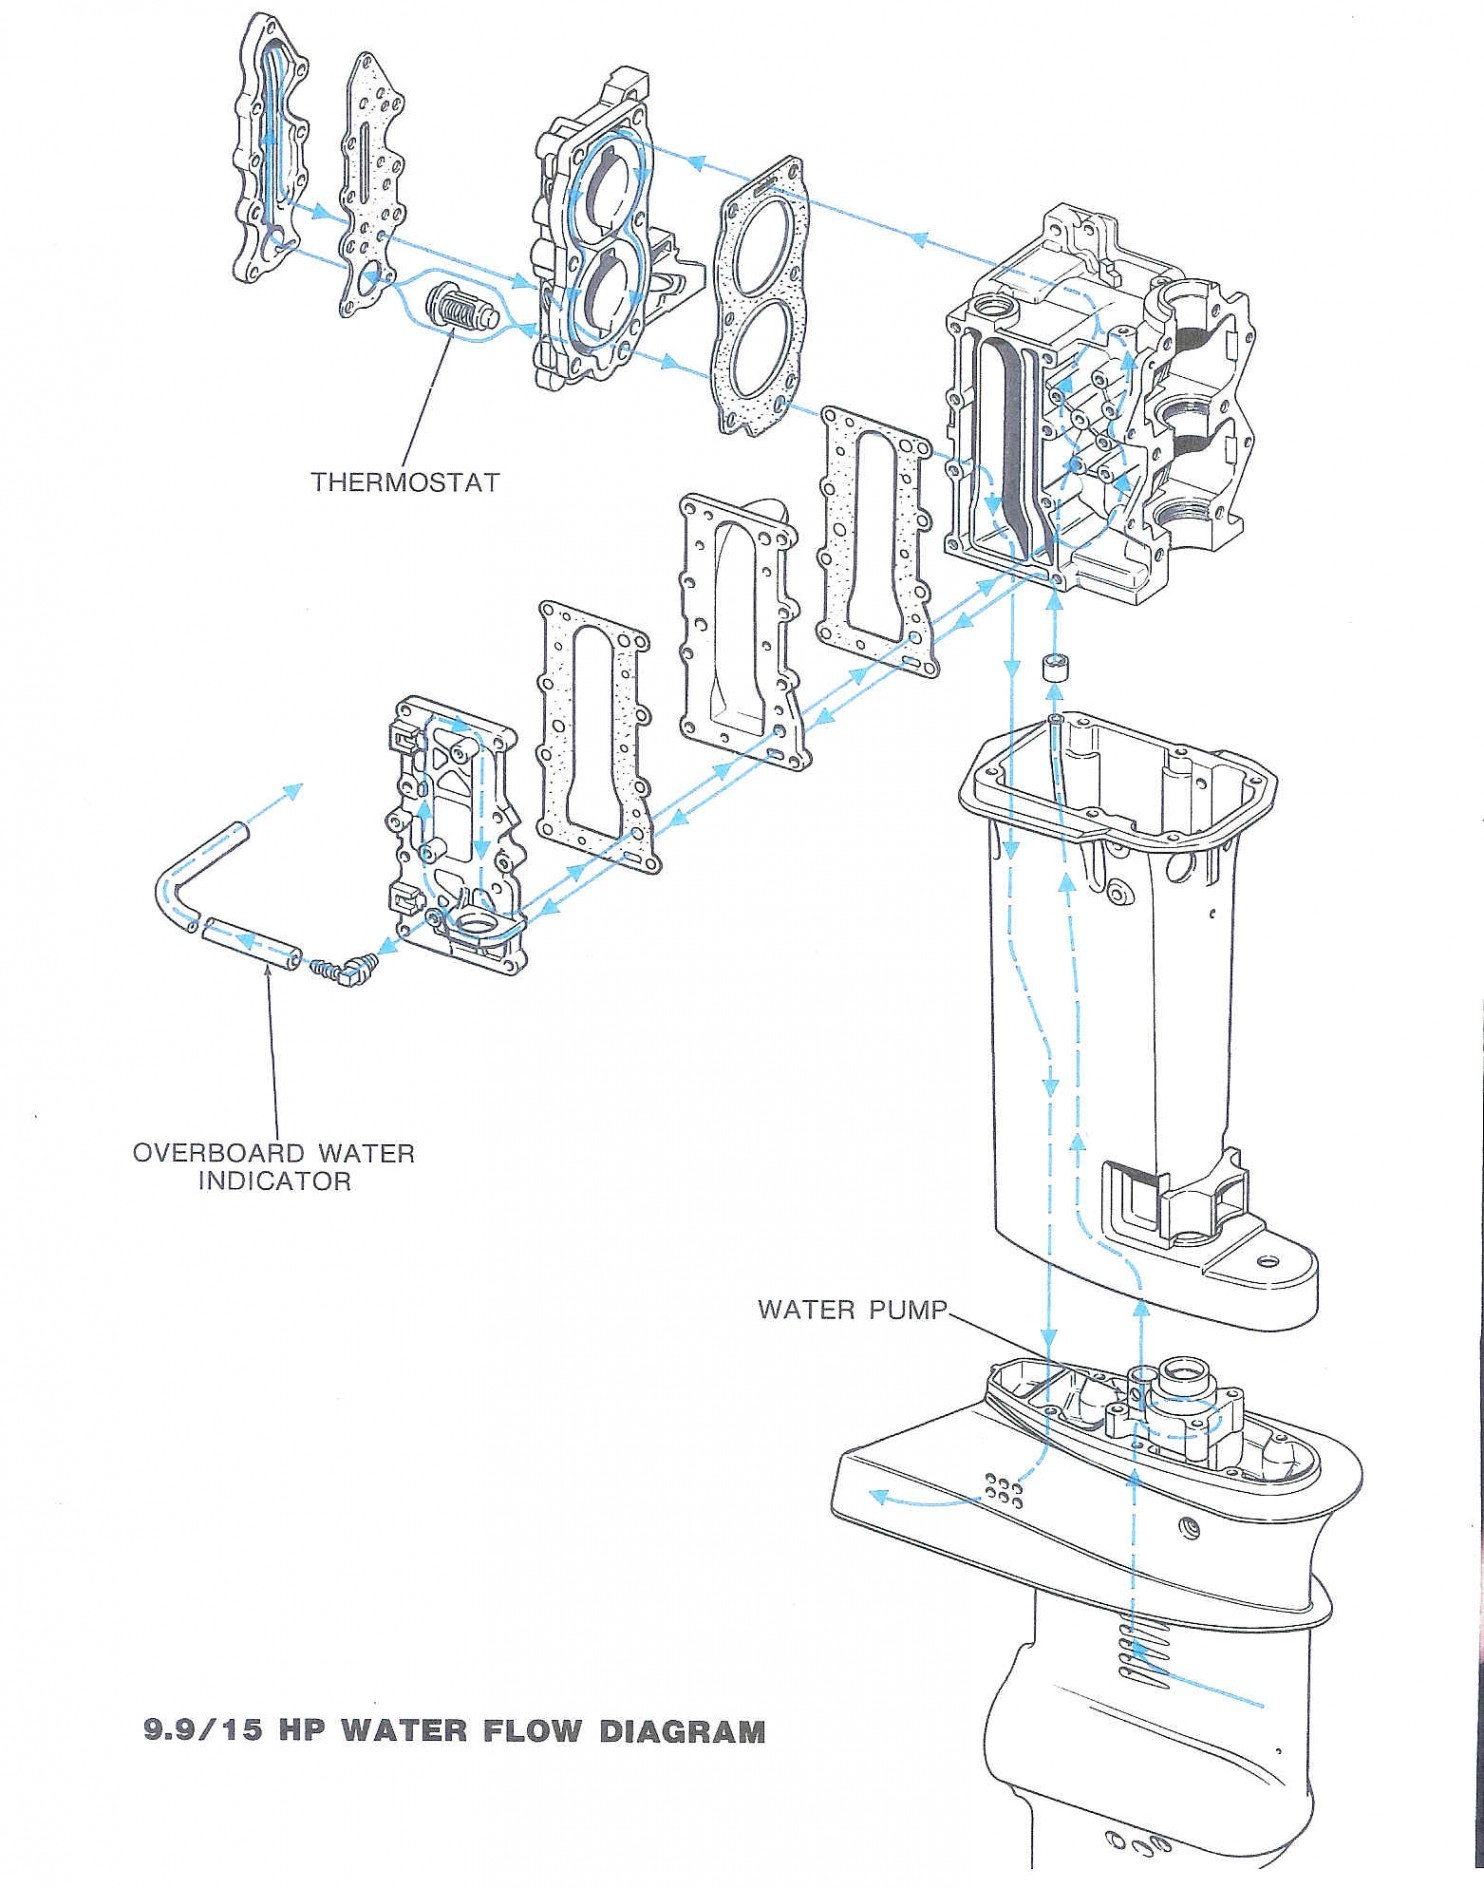 Mercury Outboard Engine Diagram Mercury Outboard Motor Parts Diagram – Mariner Outboard Parts Of Mercury Outboard Engine Diagram